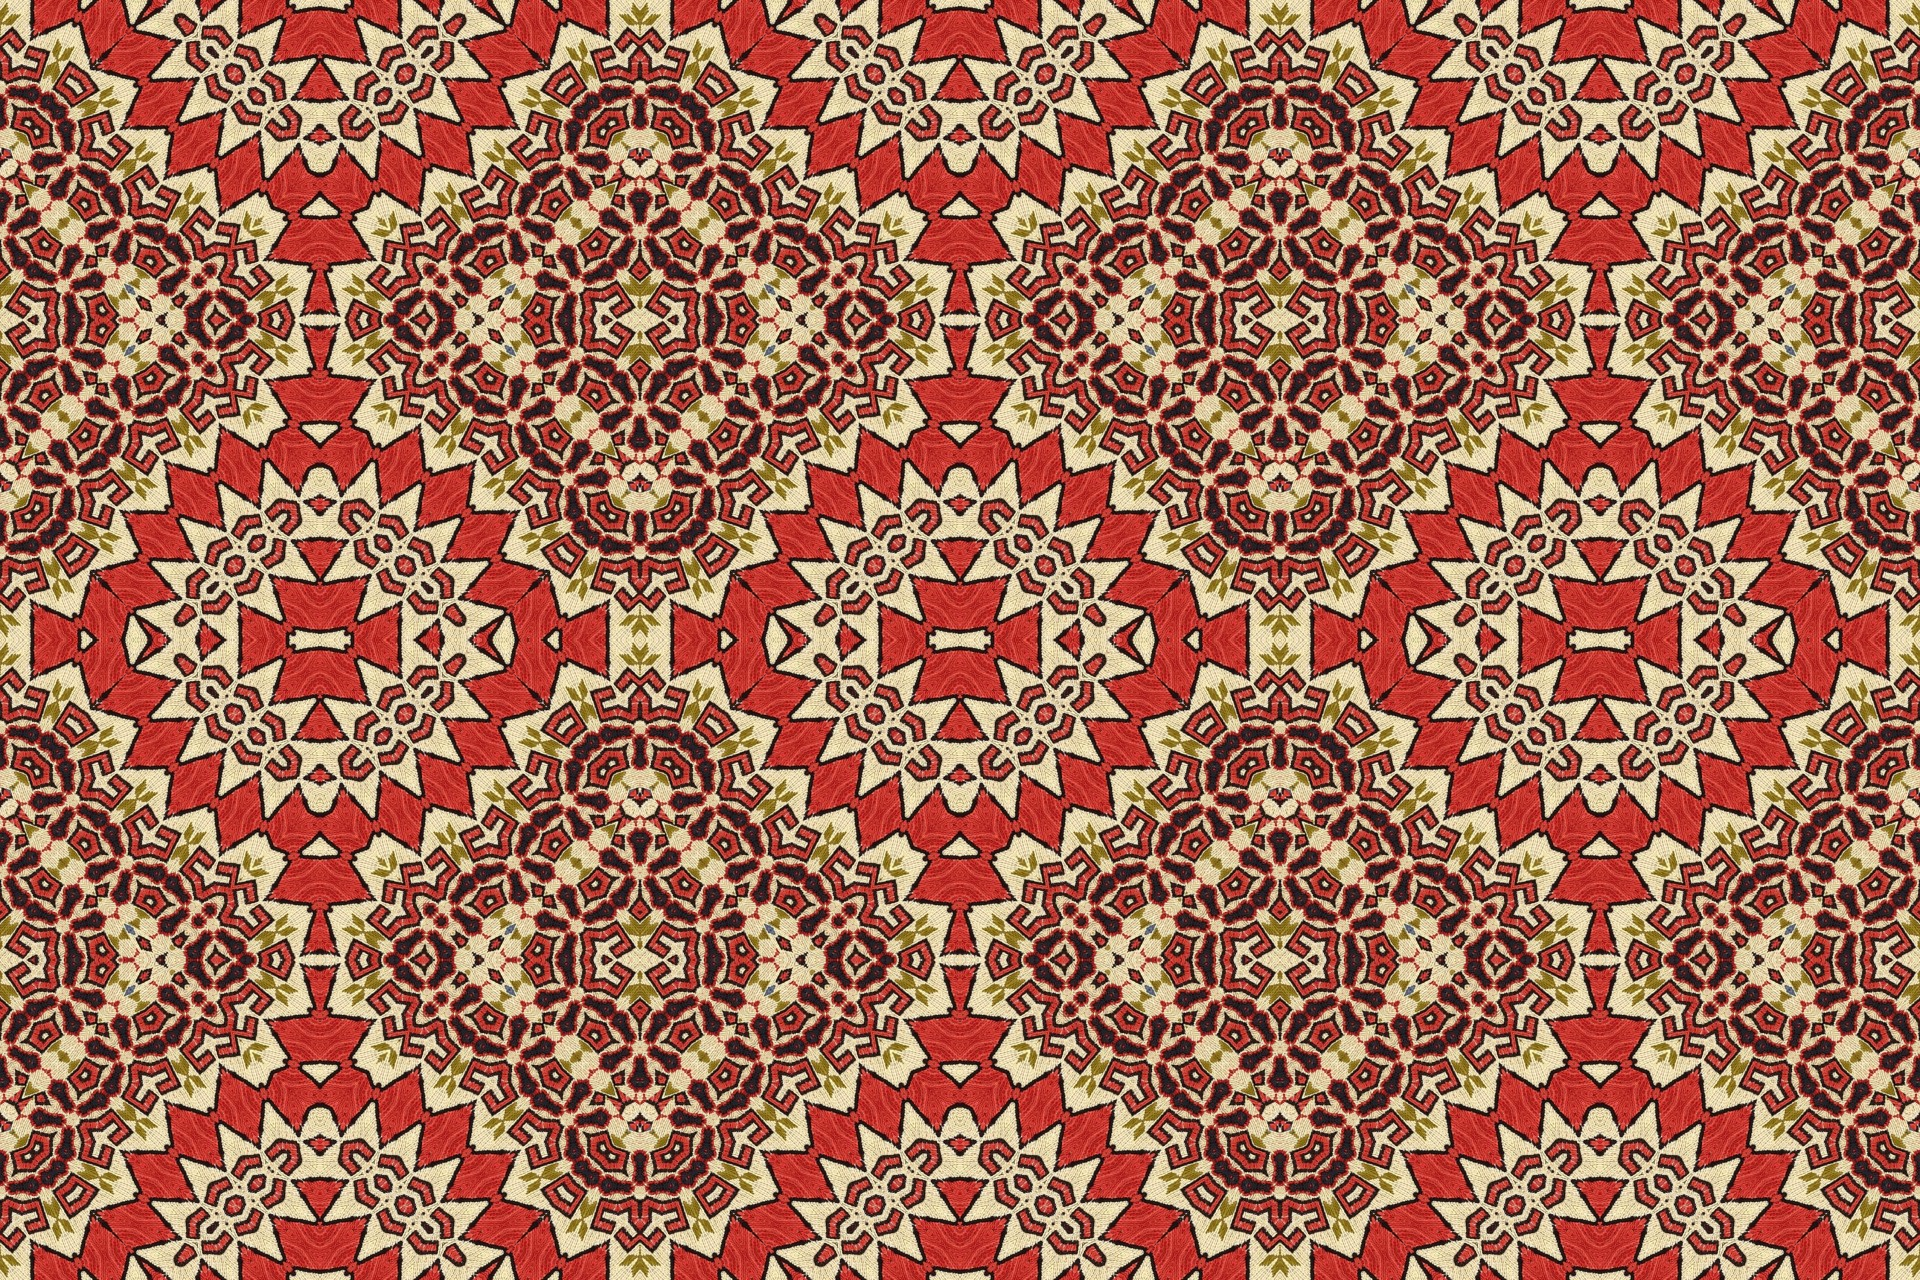 carpet patterns free download QNMYLBM